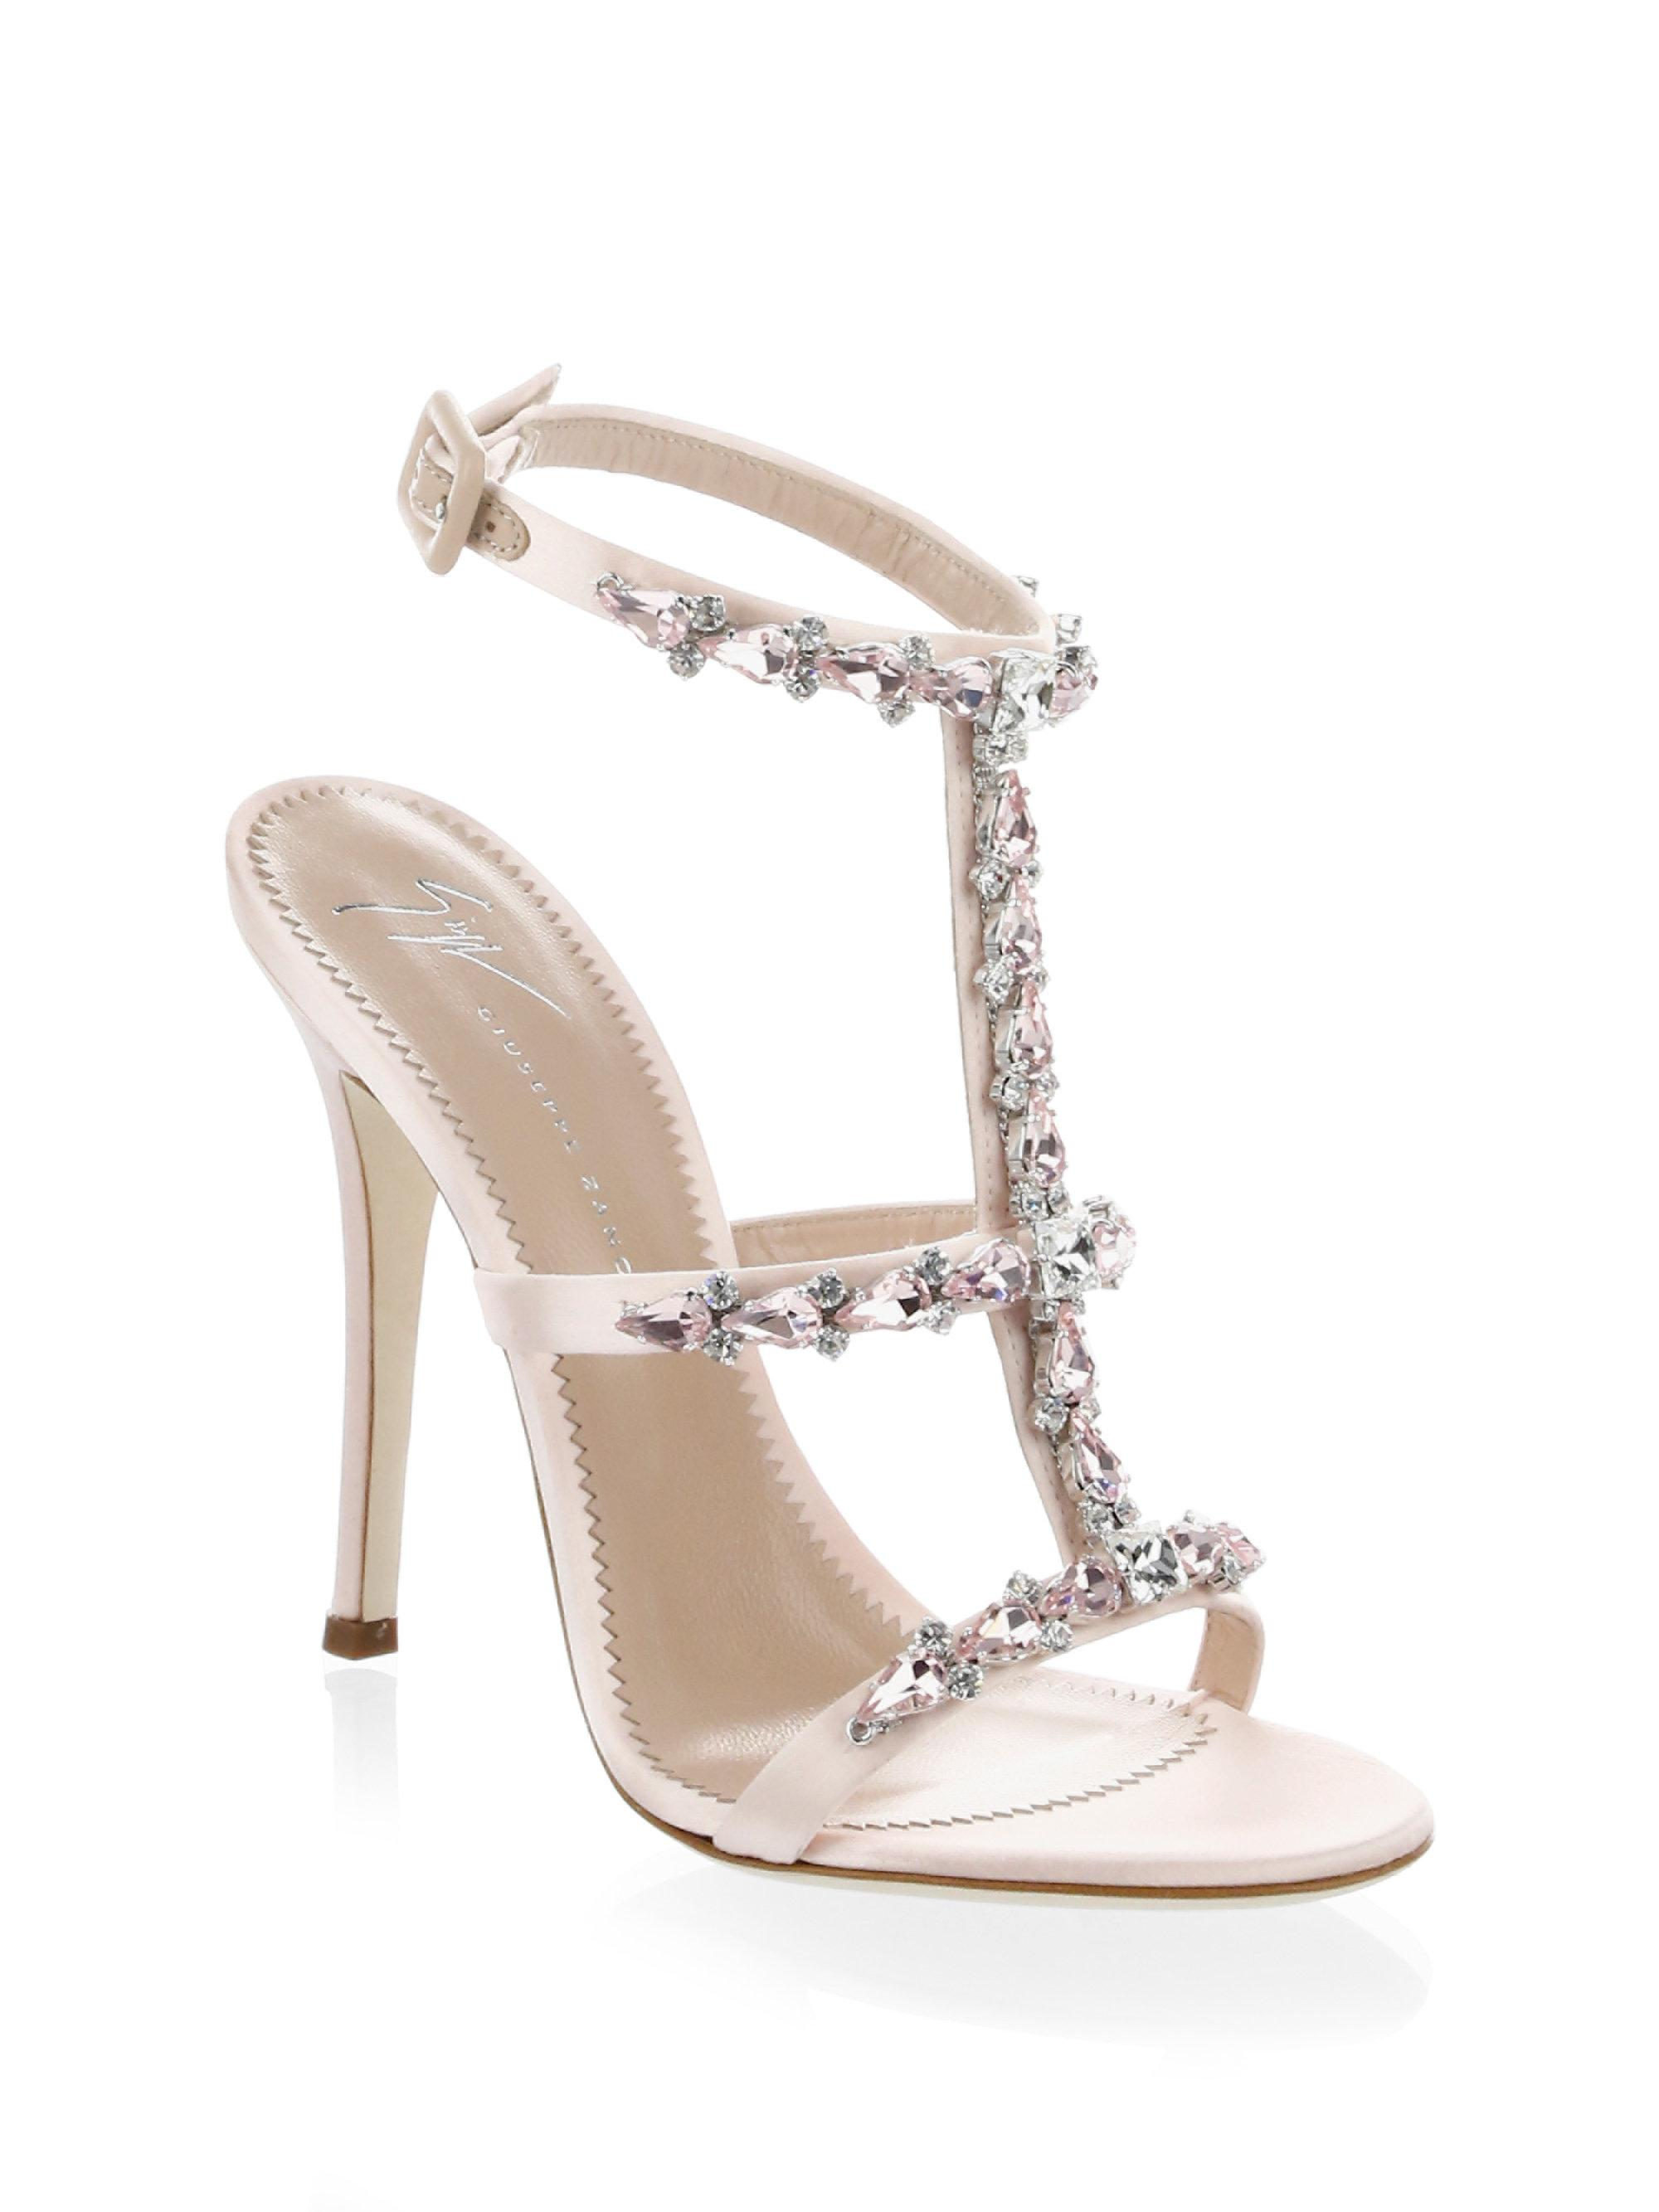 Alien Crystal-embellished Python-effect And Patent-leather Sandals - Beige Giuseppe Zanotti Quality Outlet Store Cheap Sale 2018 Unisex Buy Cheap Footlocker Pictures Factory Outlet Online With Credit Card R6DUQygPsb